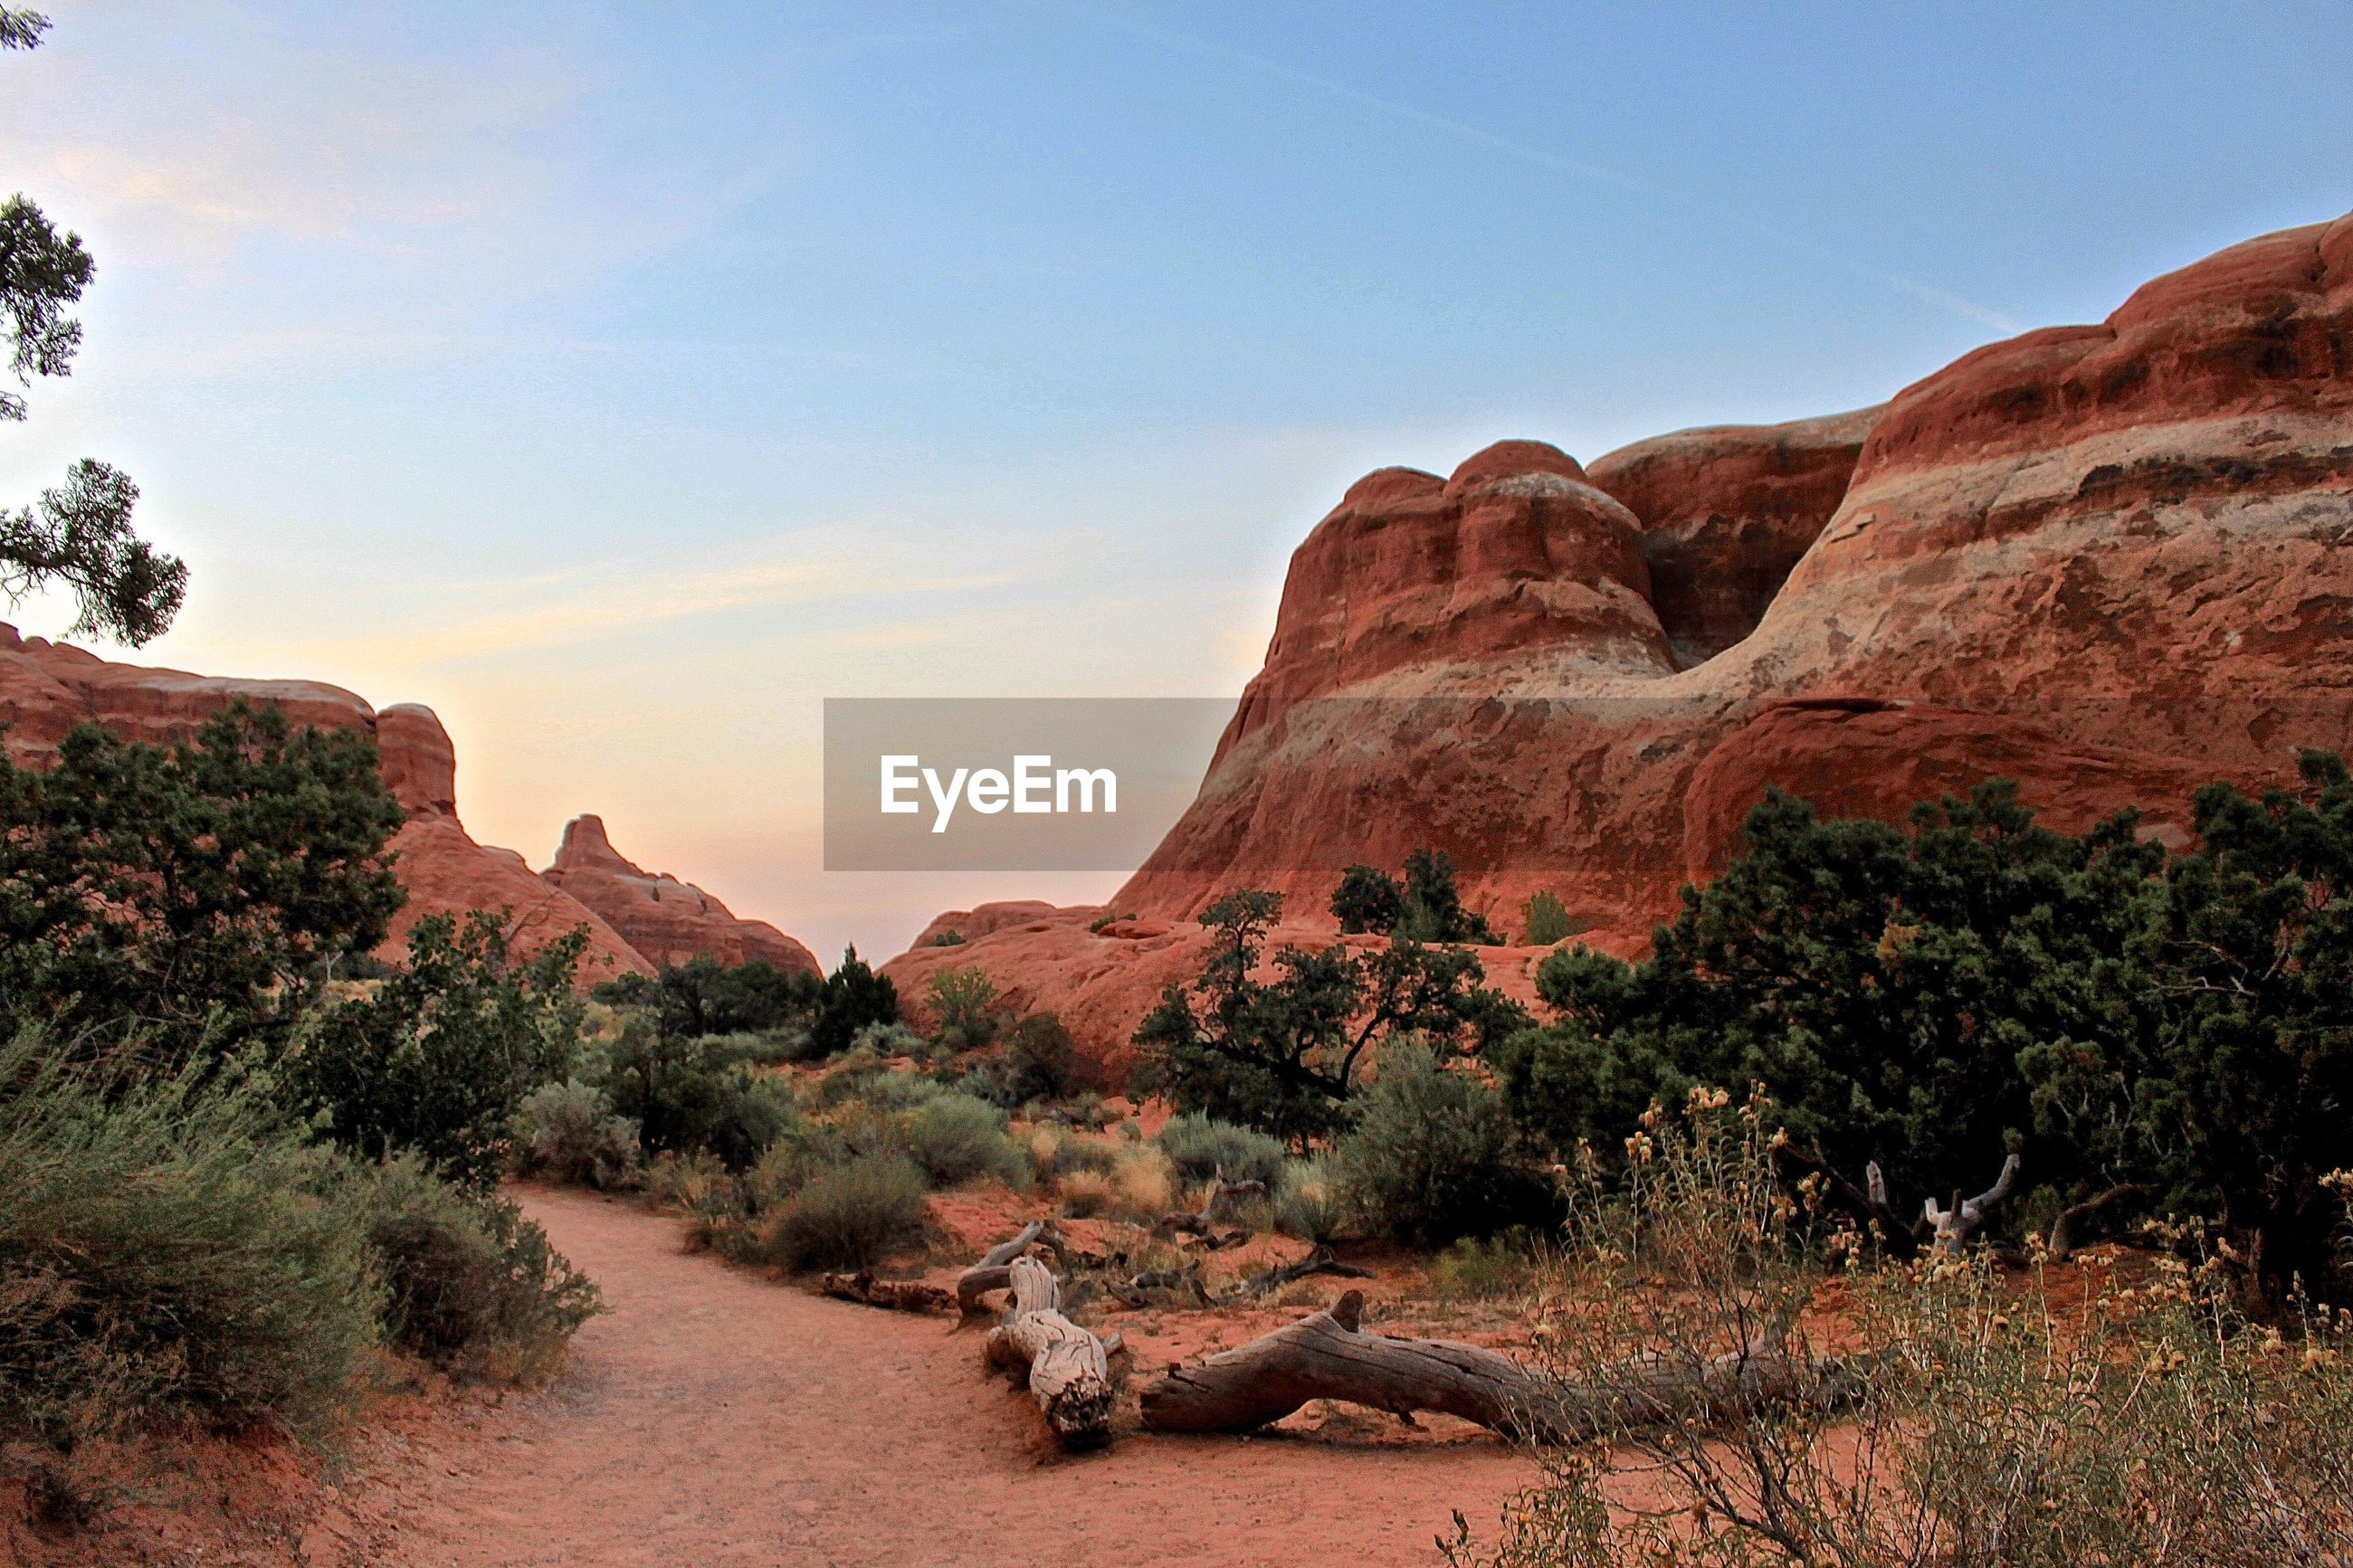 Scenic view of rock formation and plants against sky during sunset at arches national park